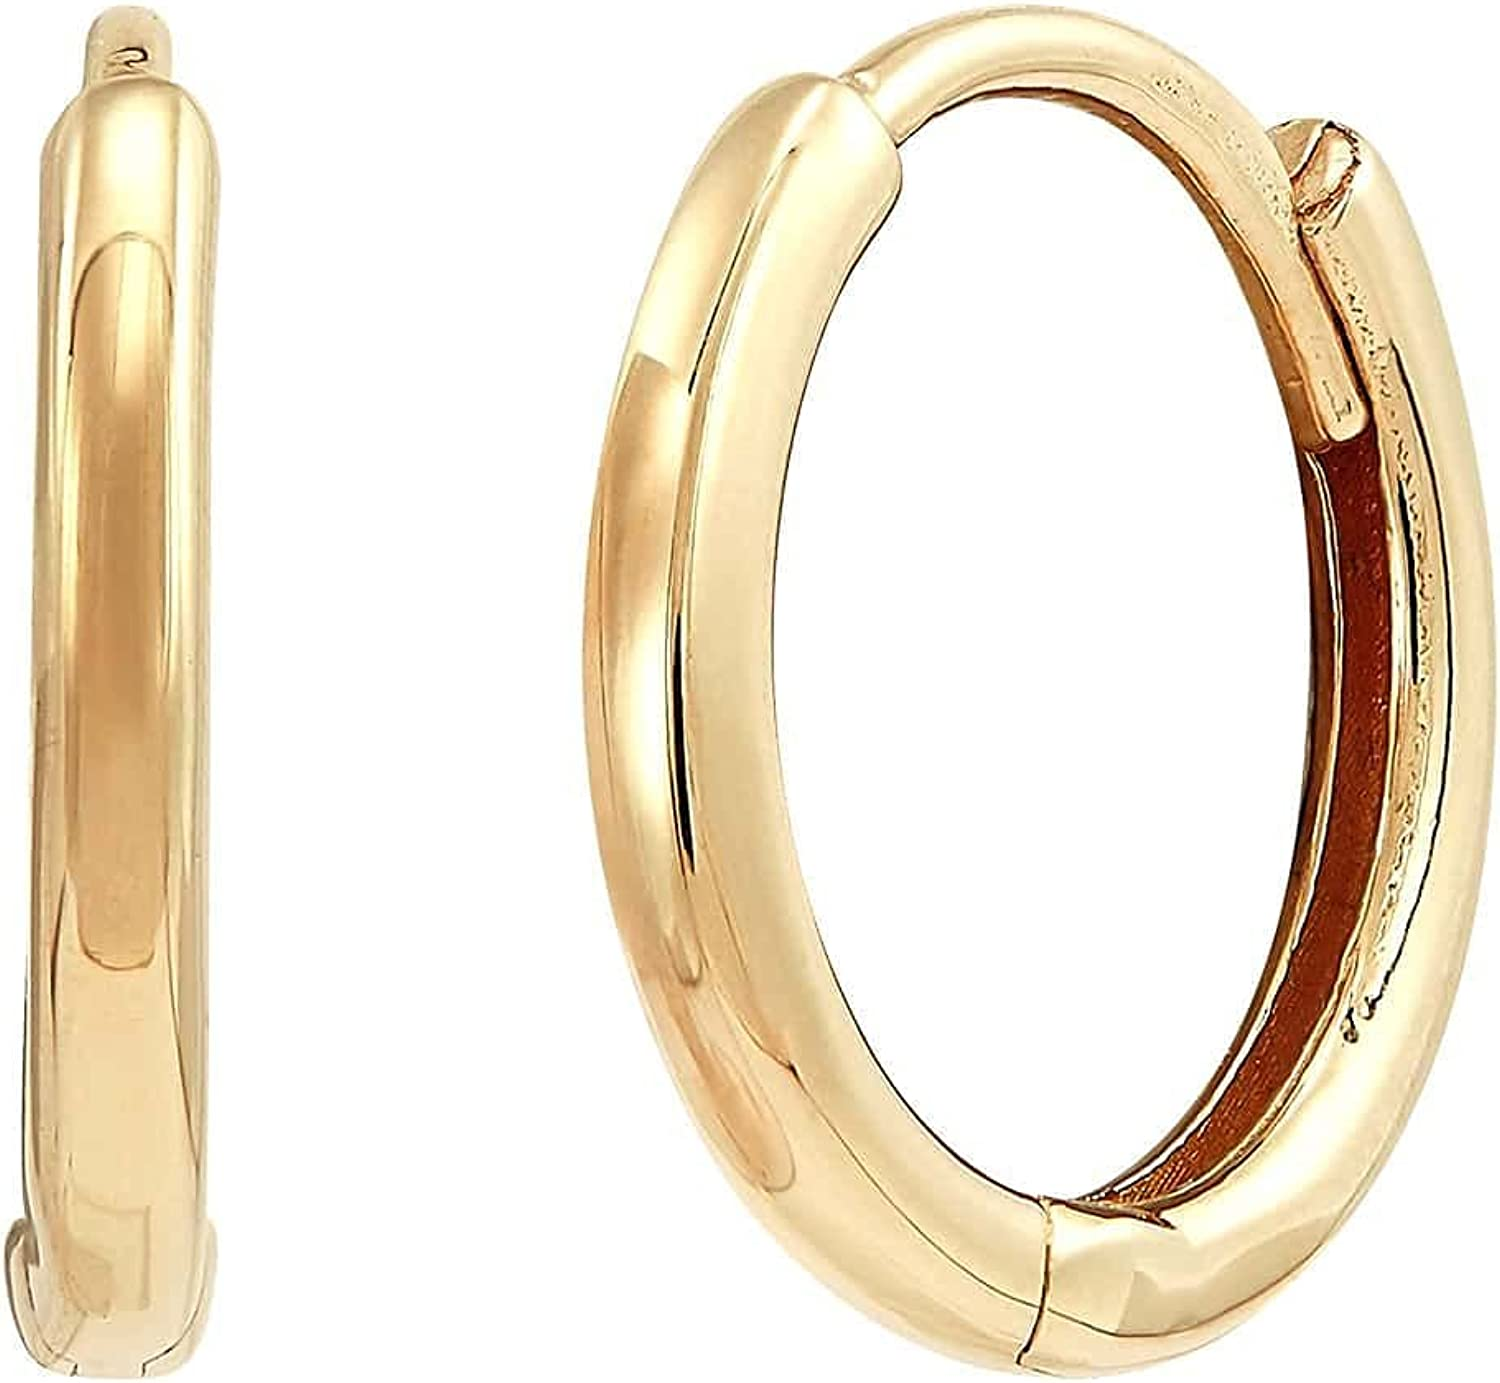 Welry '12mm Small Hoop Earrings' 14K Gold Save money Safety and trust Yellow in